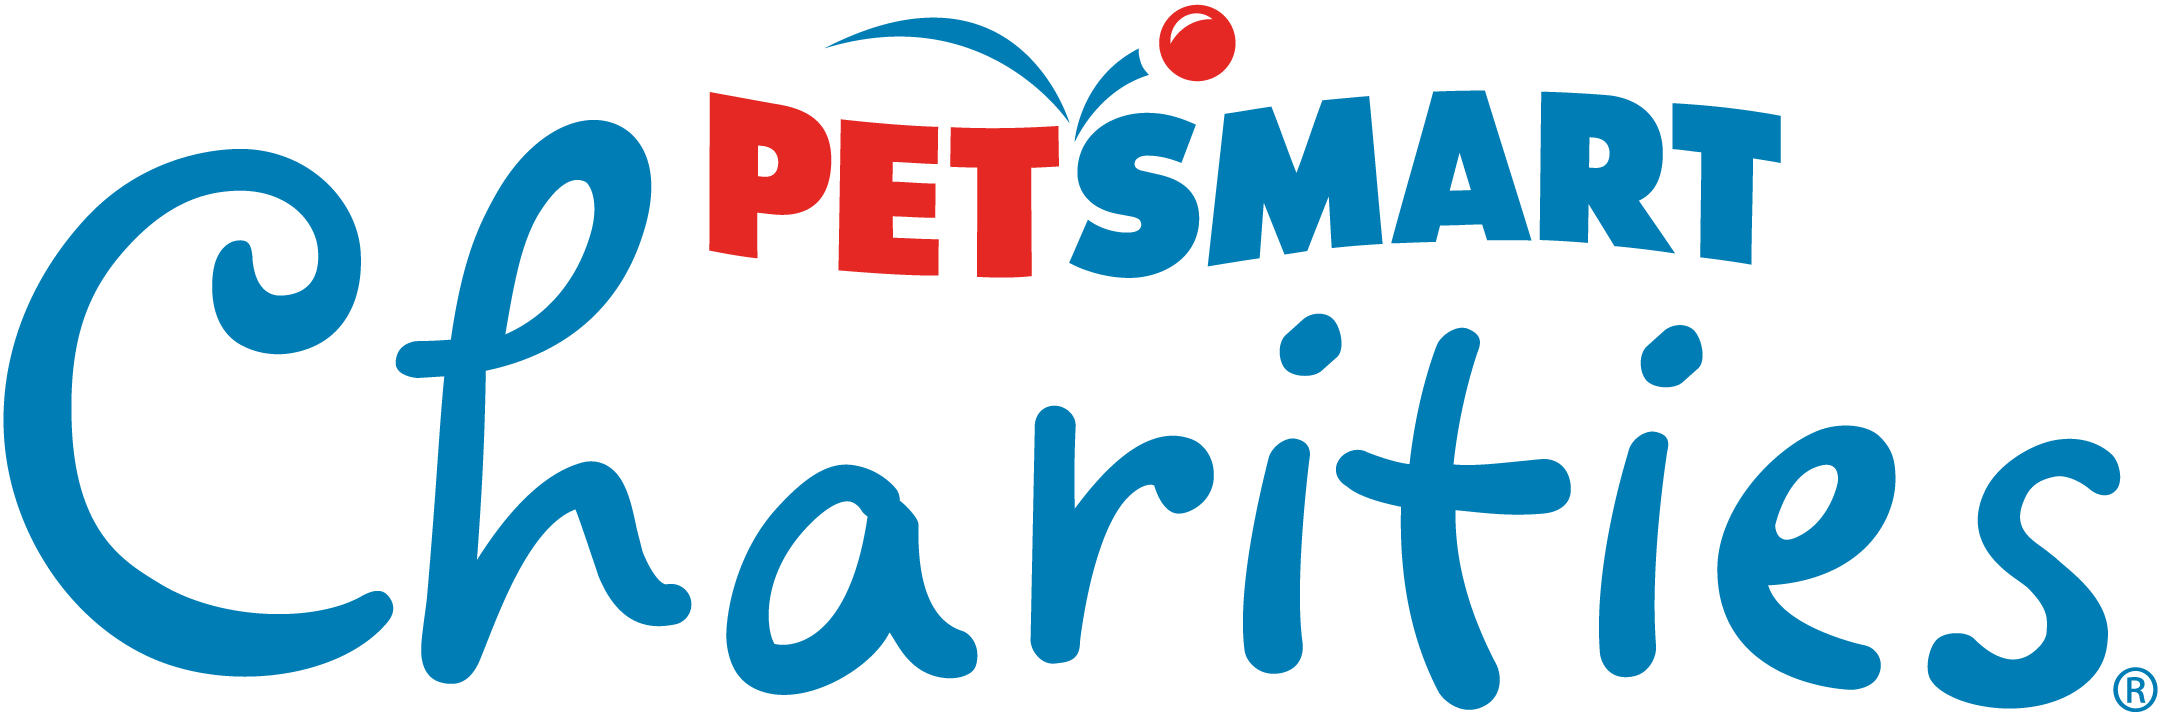 [PetSmart Charities]